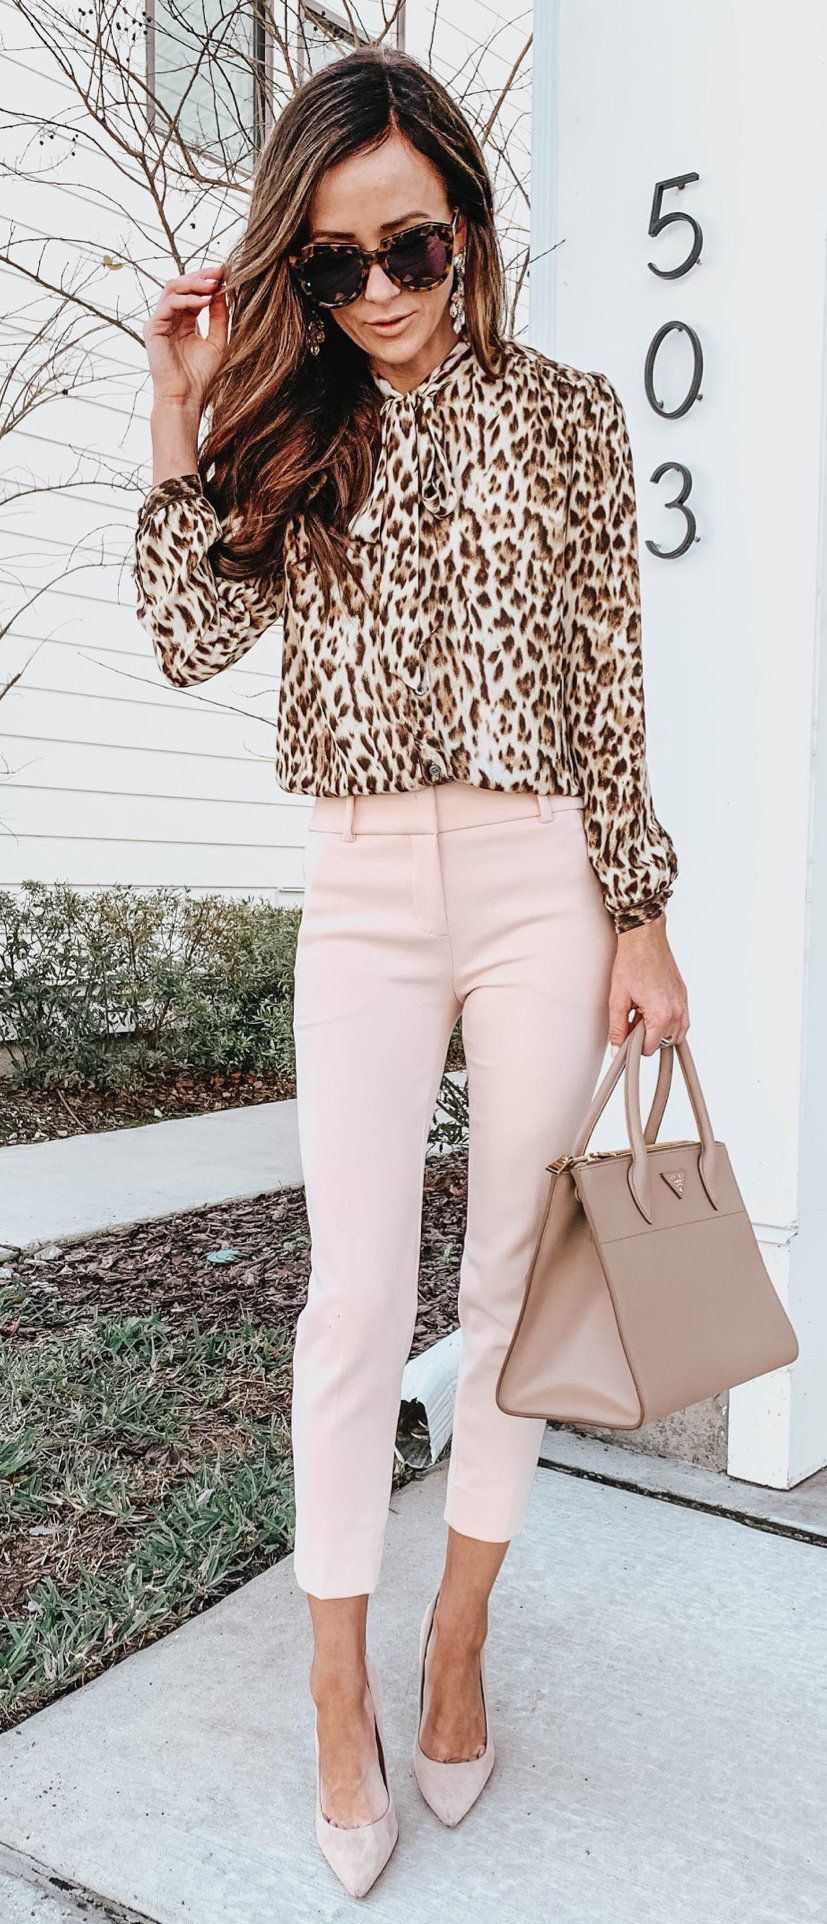 brown and black leopard pattern long-sleeved shirt #spring #outfits